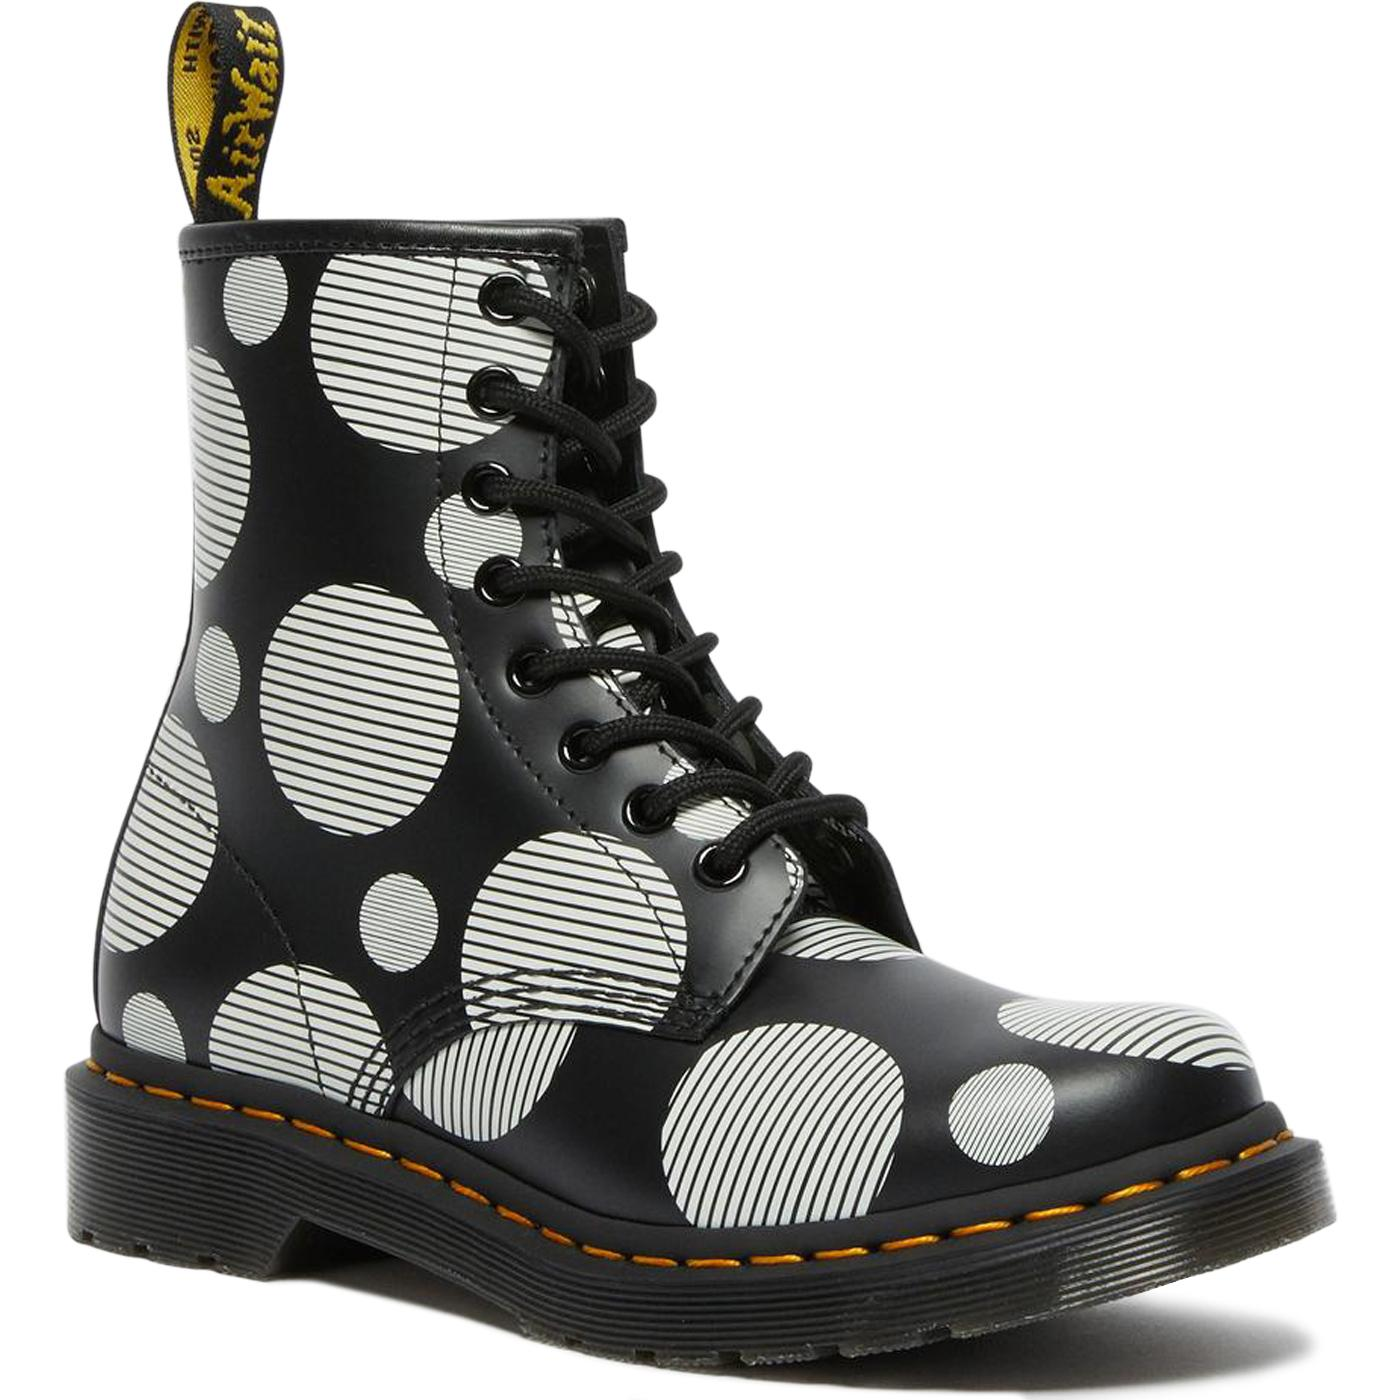 1460 Polka Dot DR MARTENS Womens Retro Ankle Boots